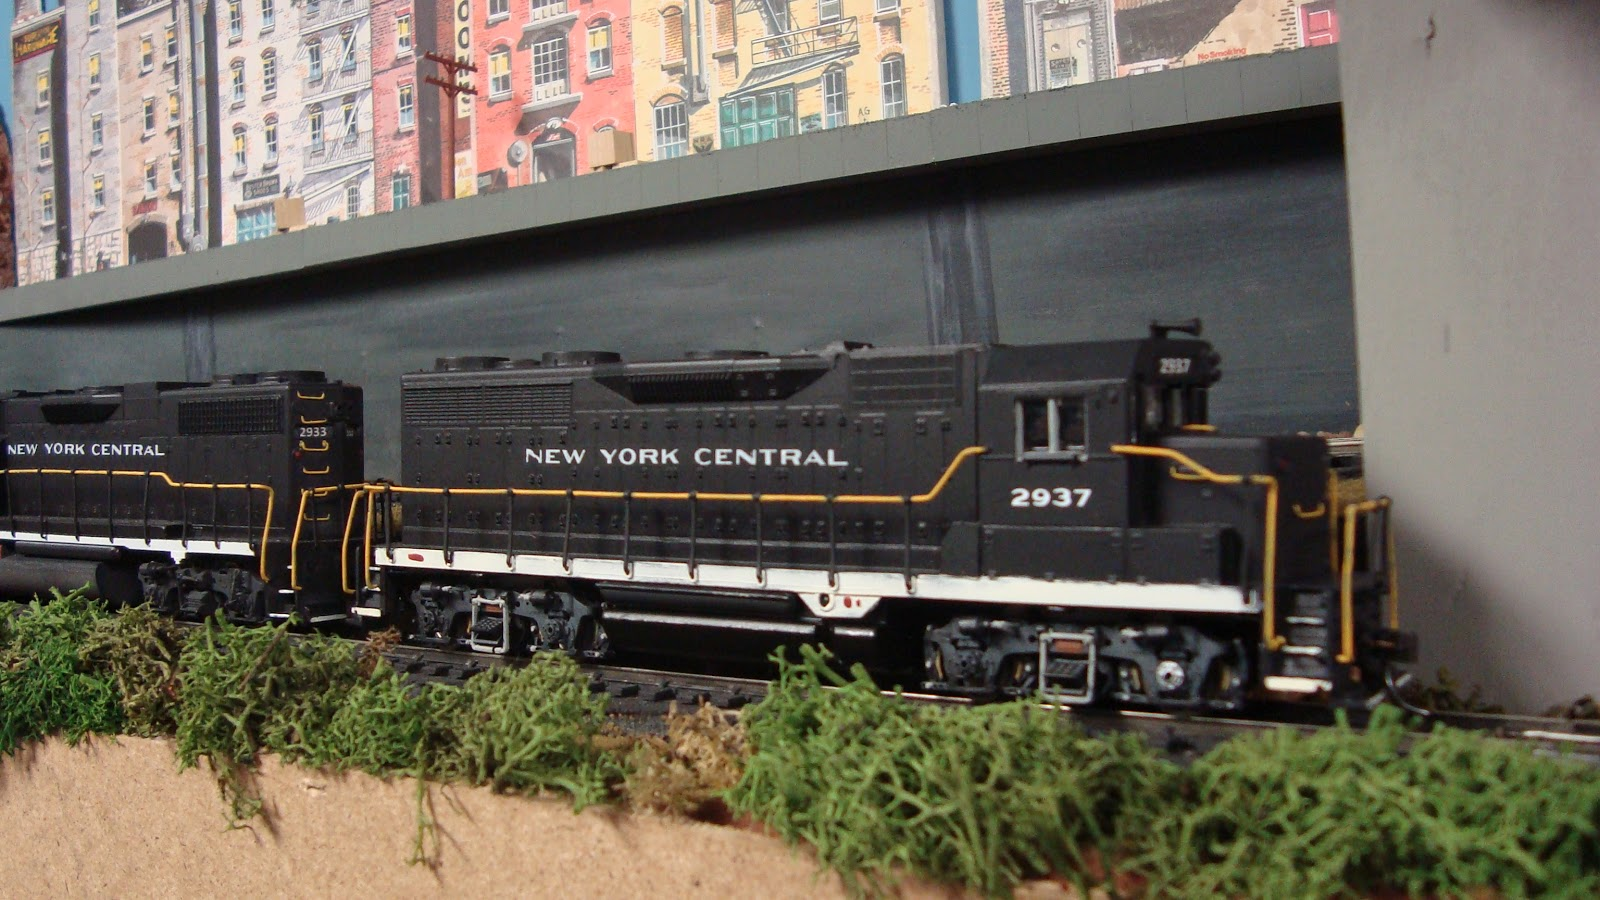 New York Central Train Layout: D.I.Y. Painted Locomotives